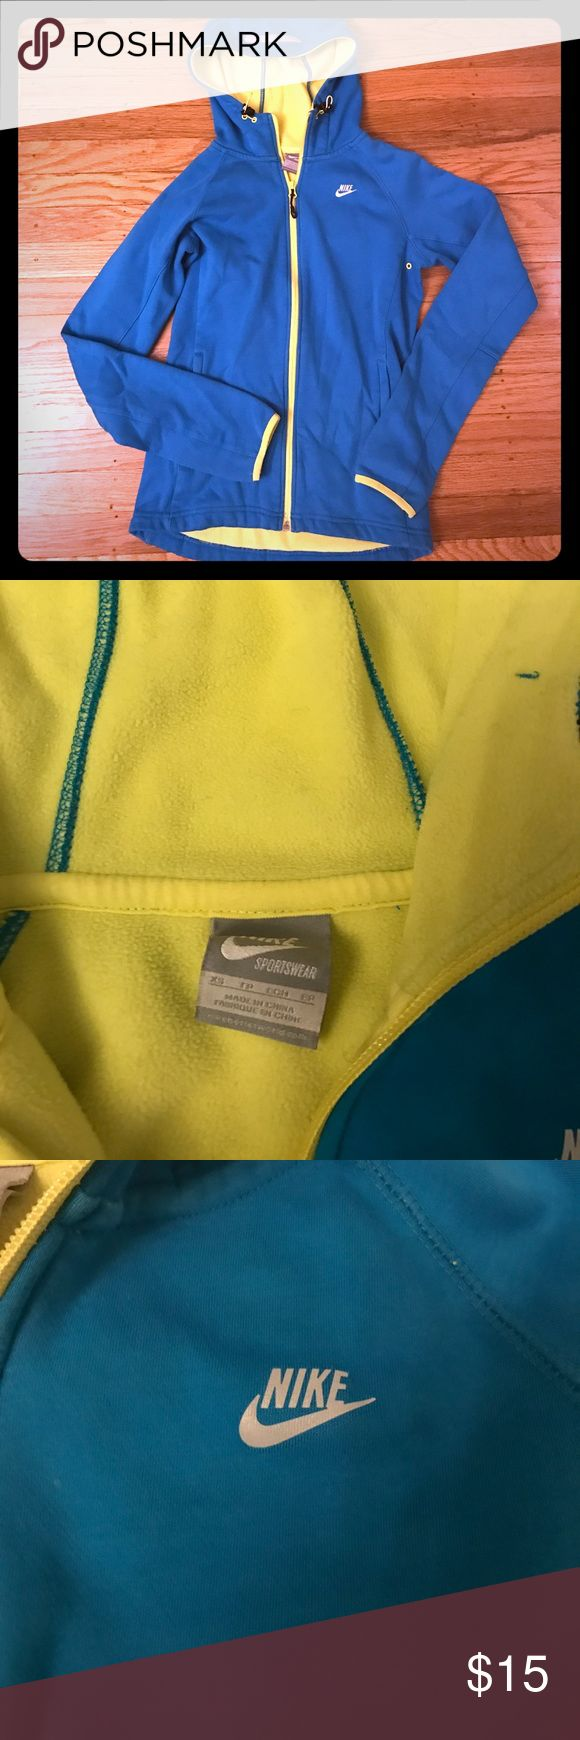 NIKE zip up hoodie fleece lined - Size XS Extra warm, form fitting, bright turquoise jacket with fleece yellow lining. Reflective hood with bungee draw strings. Has a faint stain on left side (picture taken). Nike Jackets & Coats Utility Jackets